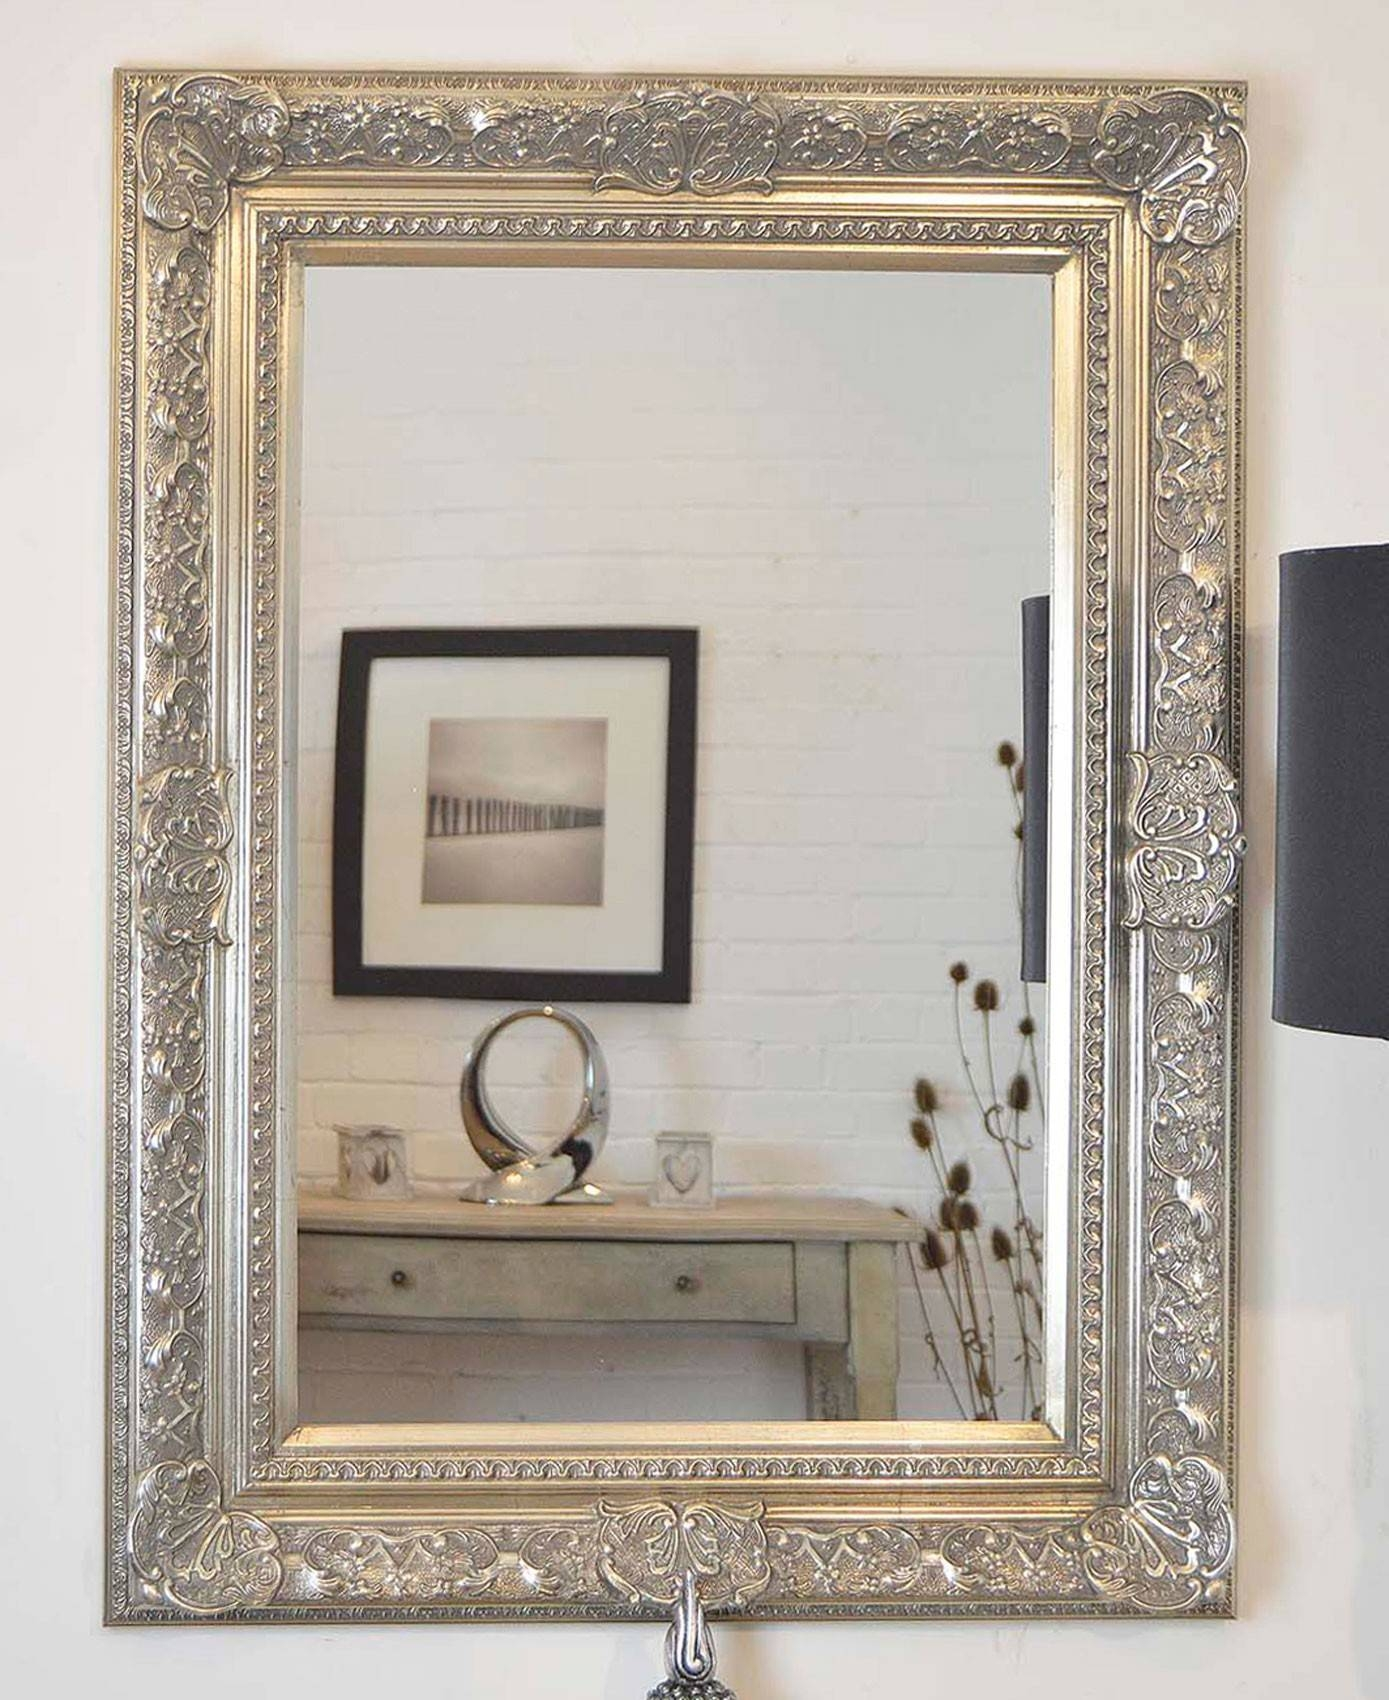 Cheap Large Wall Mirrors 79 Breathtaking Decor Plus Large Wall Regarding Silver Ornate Wall Mirrors (View 7 of 25)